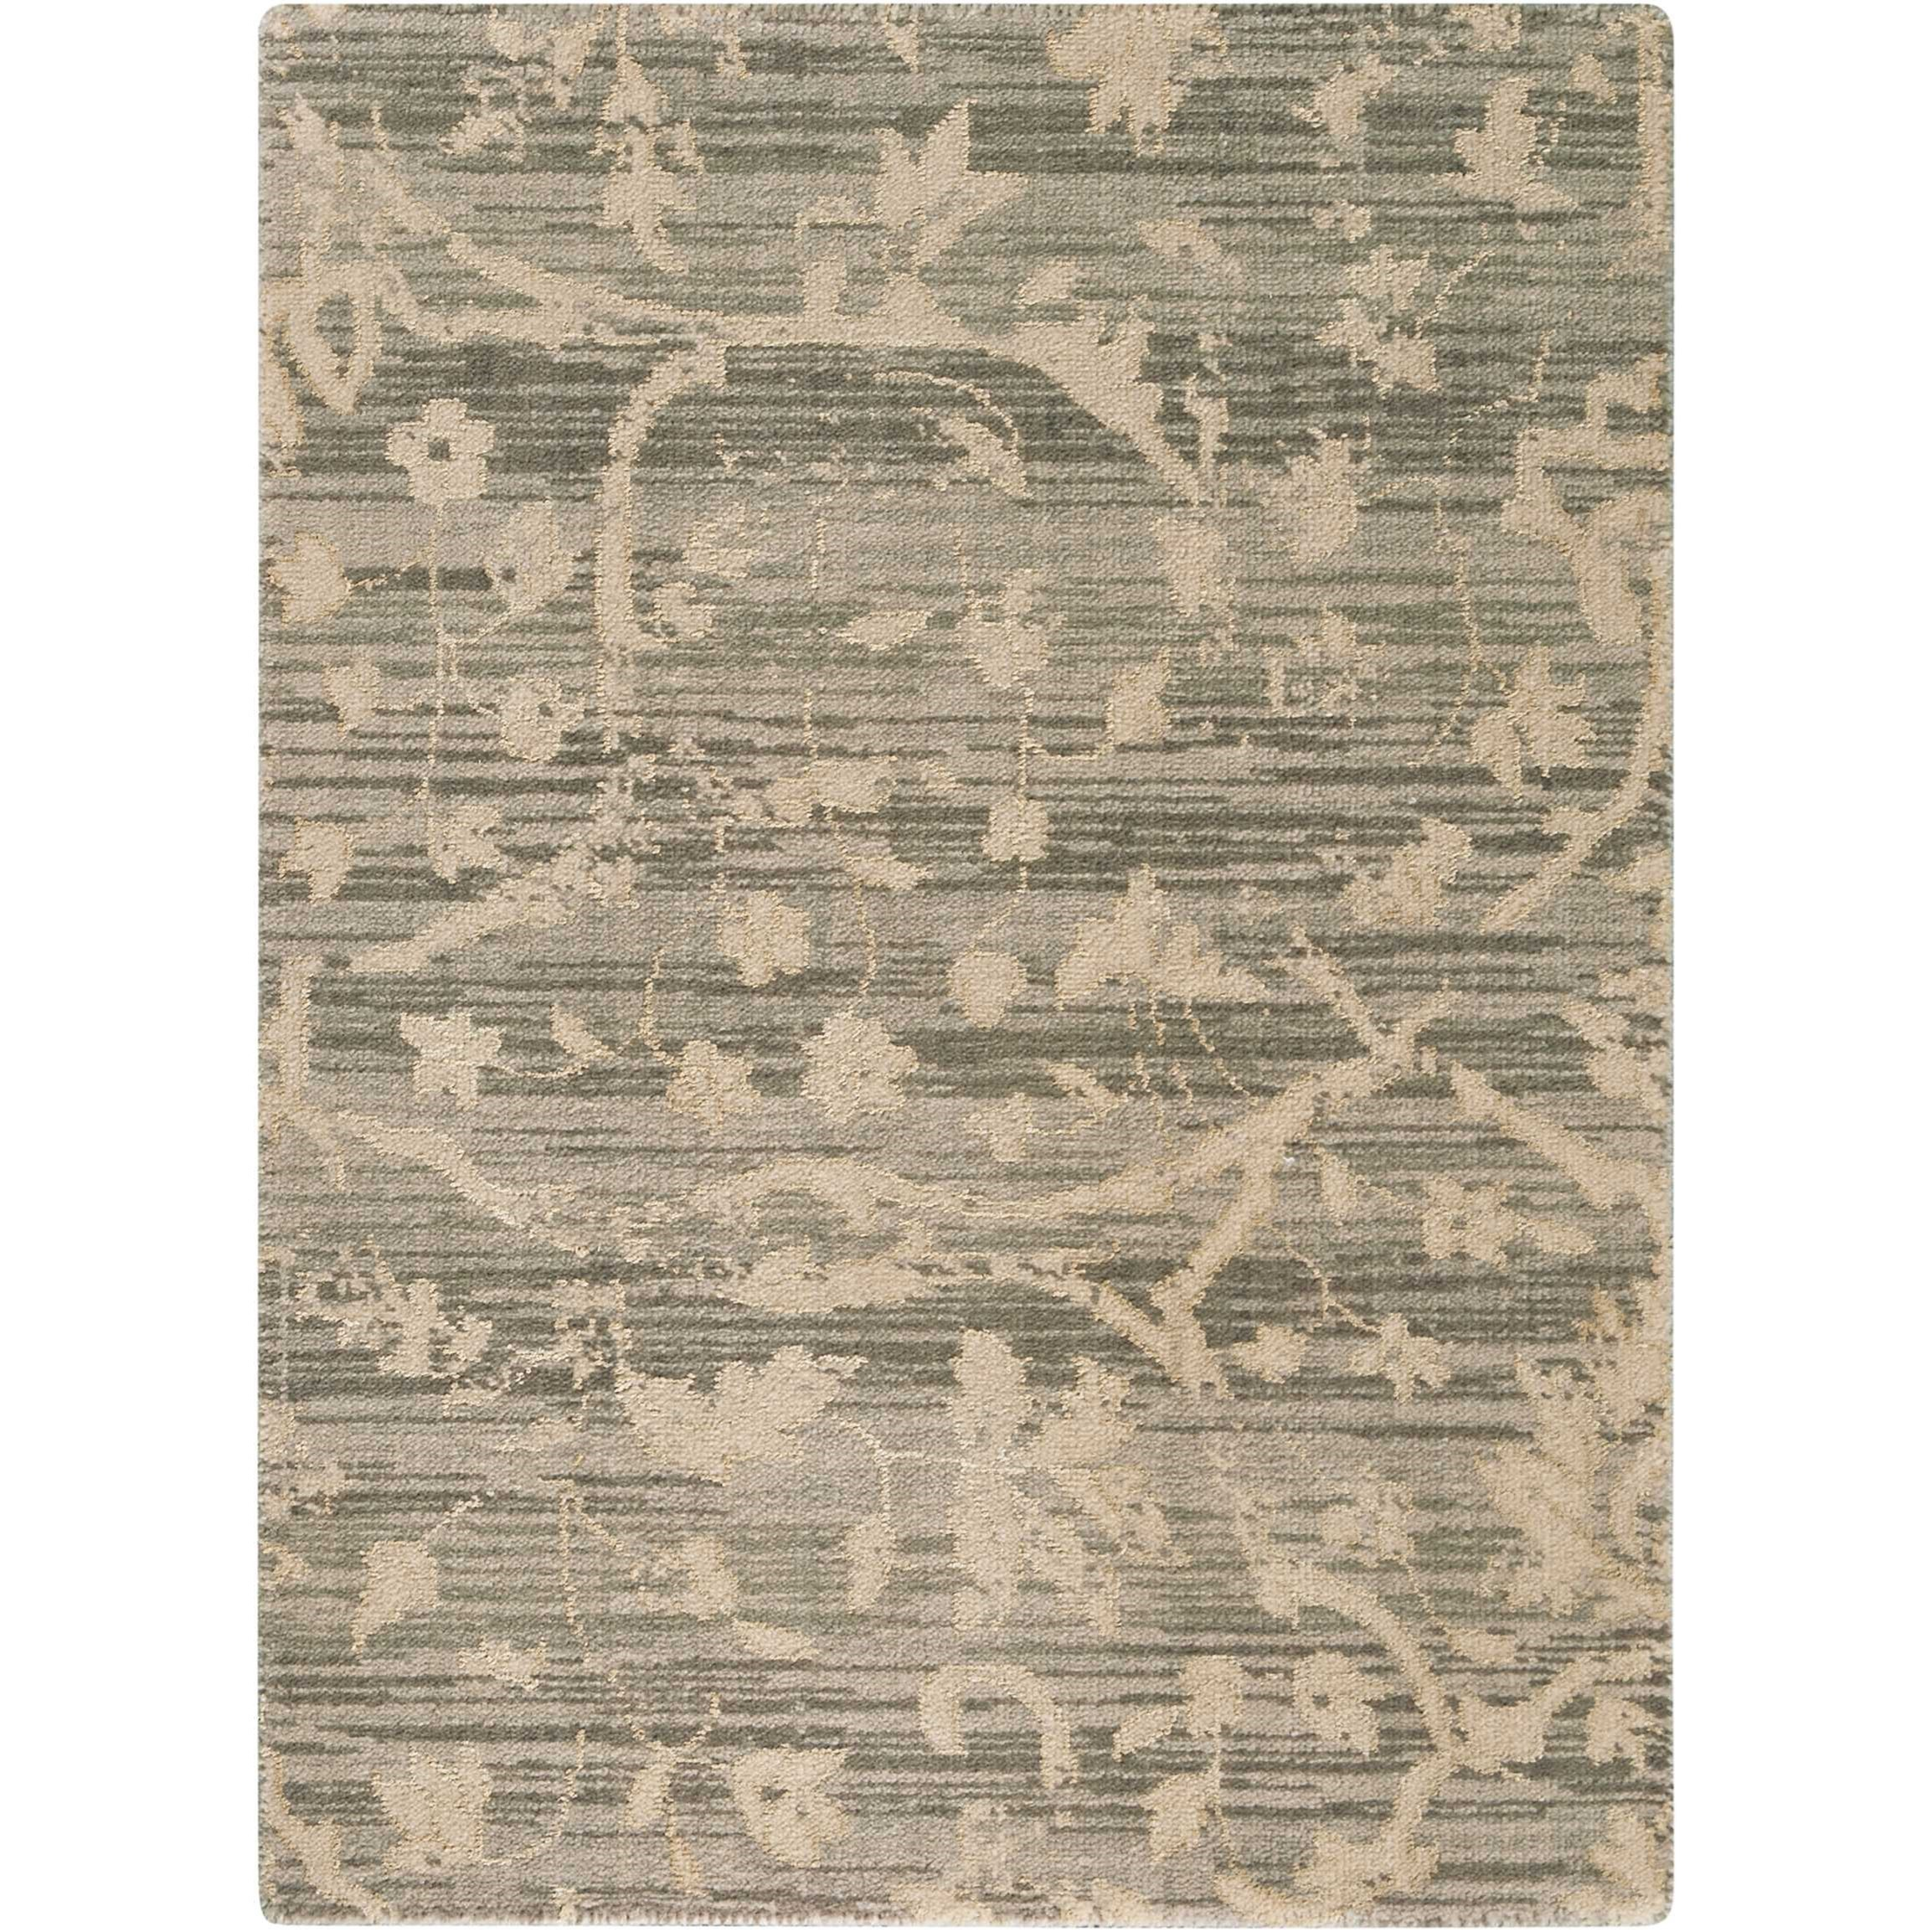 """Silk Elements 2'3"""" x 3' Taupe Rectangle Rug by Nourison at Adcock Furniture"""